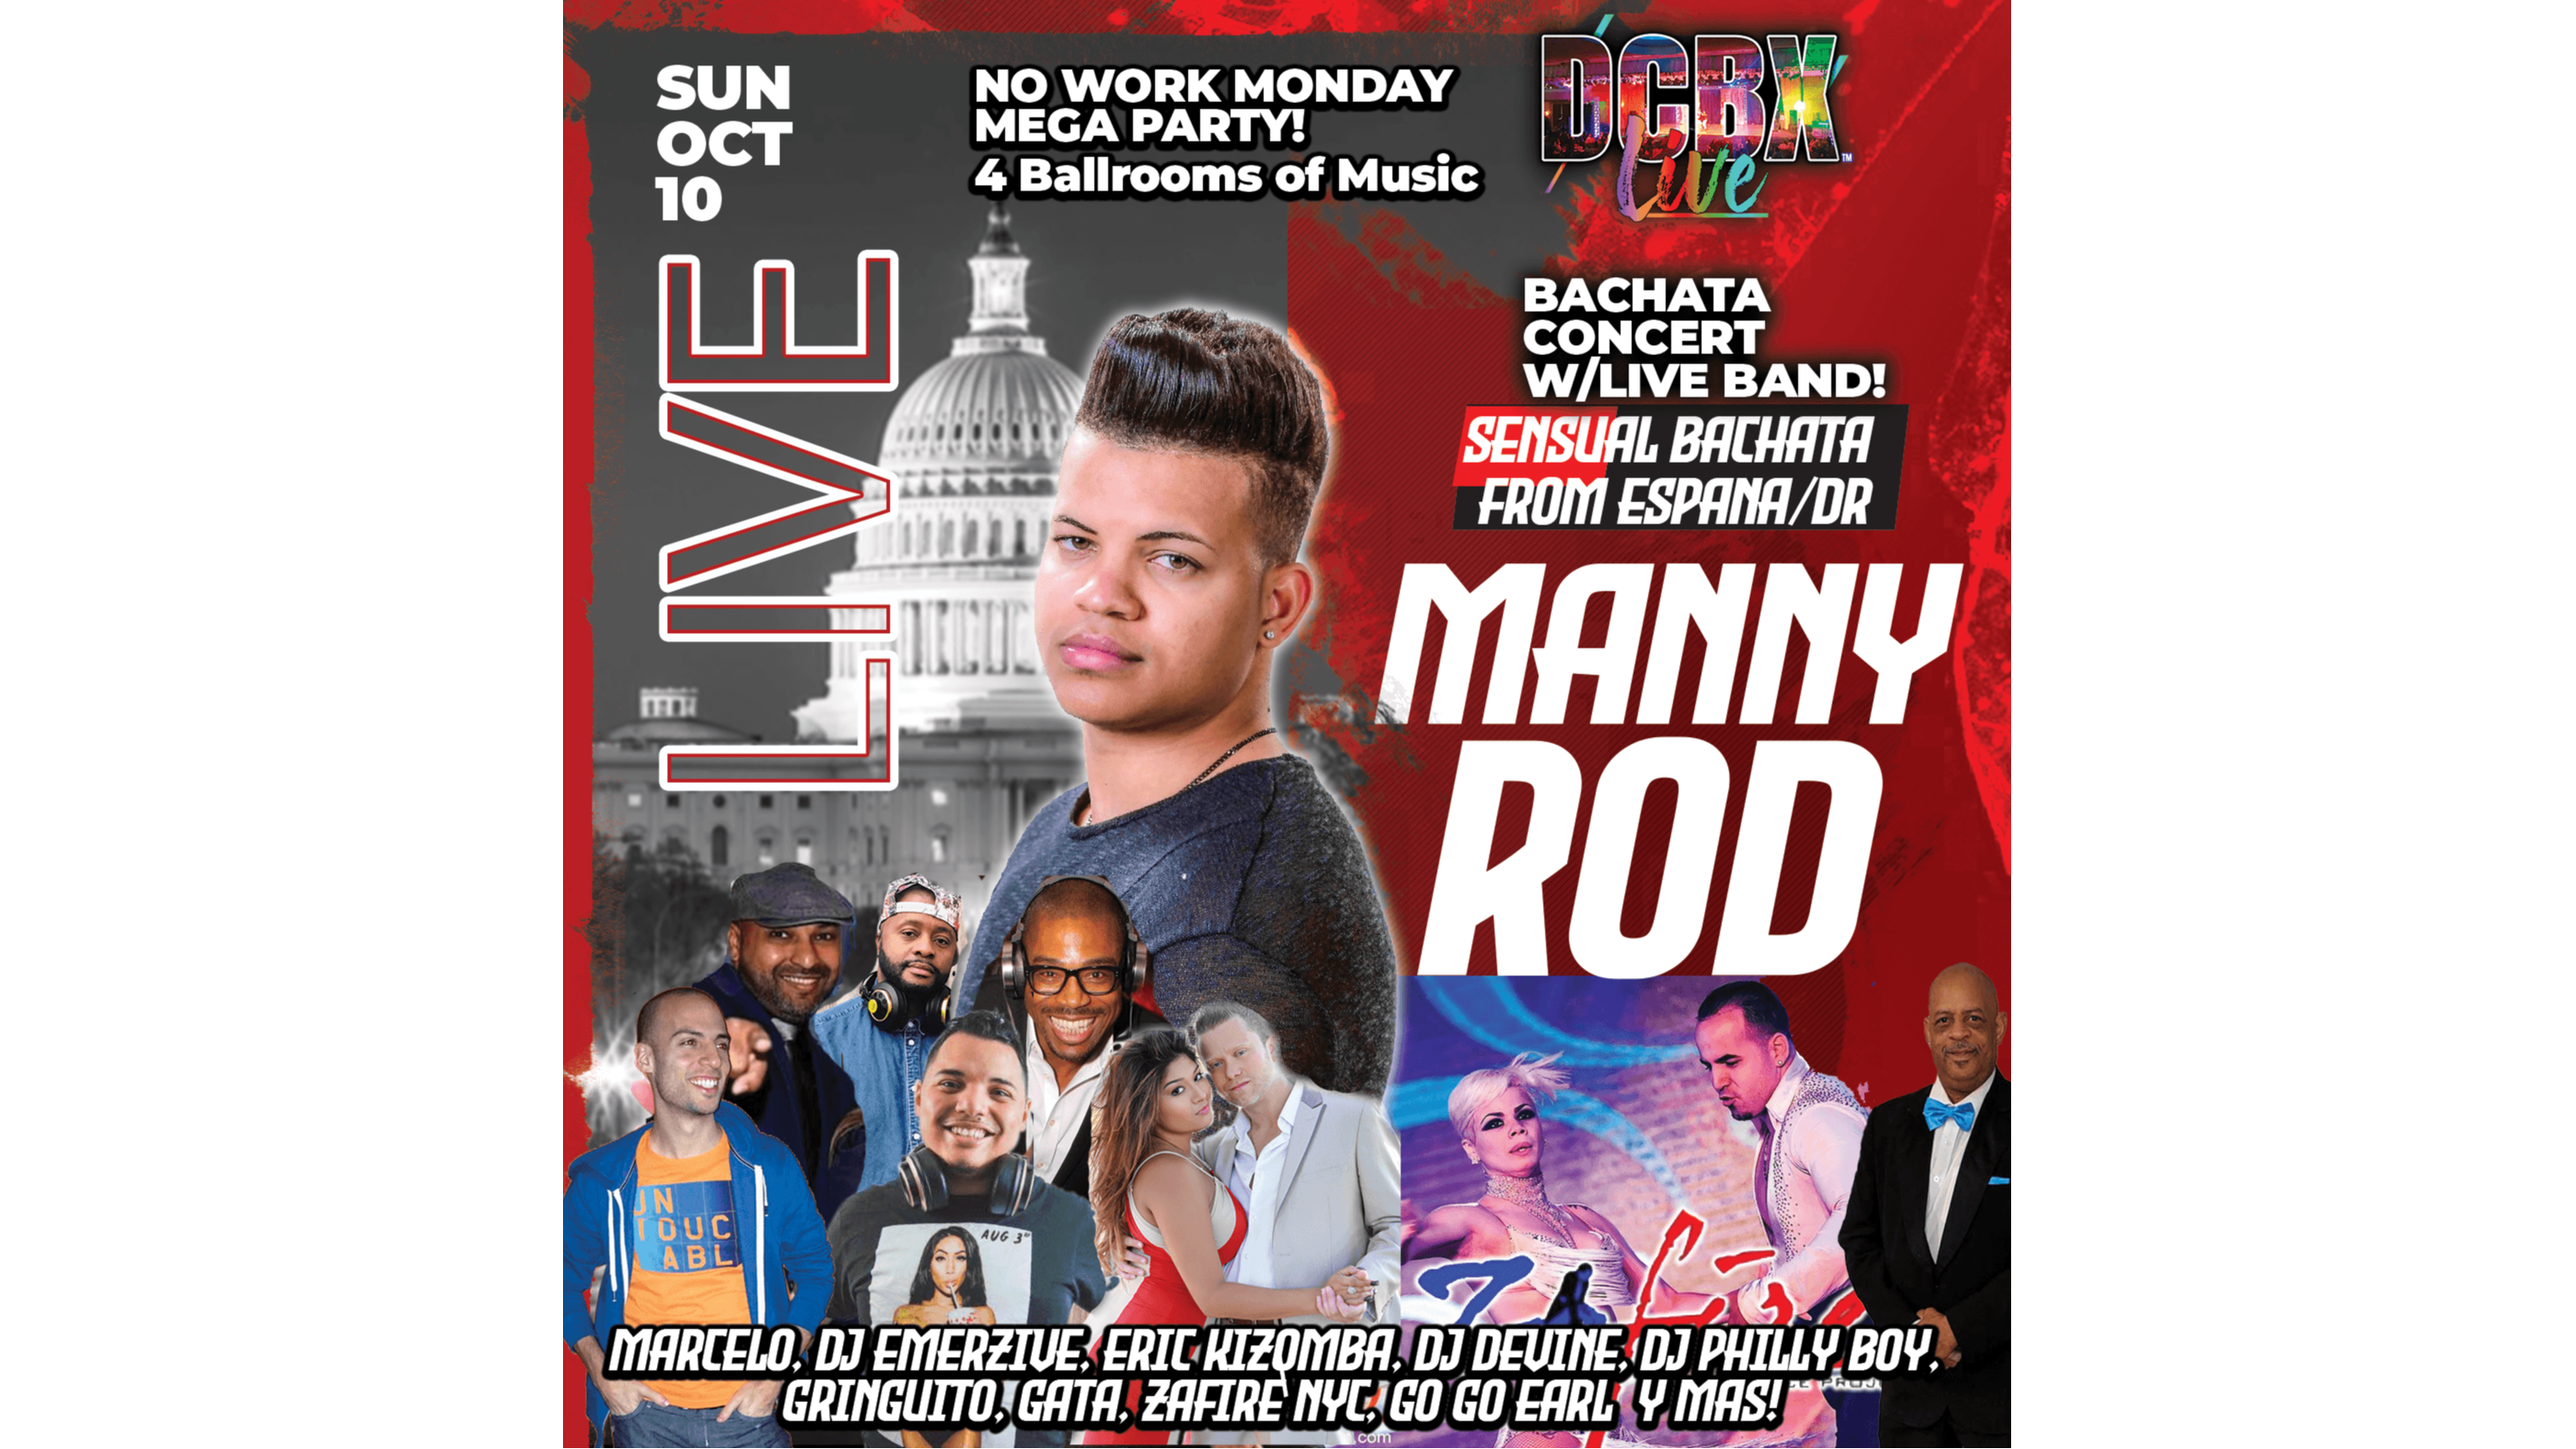 Photo for No Work Monday Holiday Bash - Manny Rod with Live Bachata Concert and Band - 4 Ballrooms and more! on ViewStub